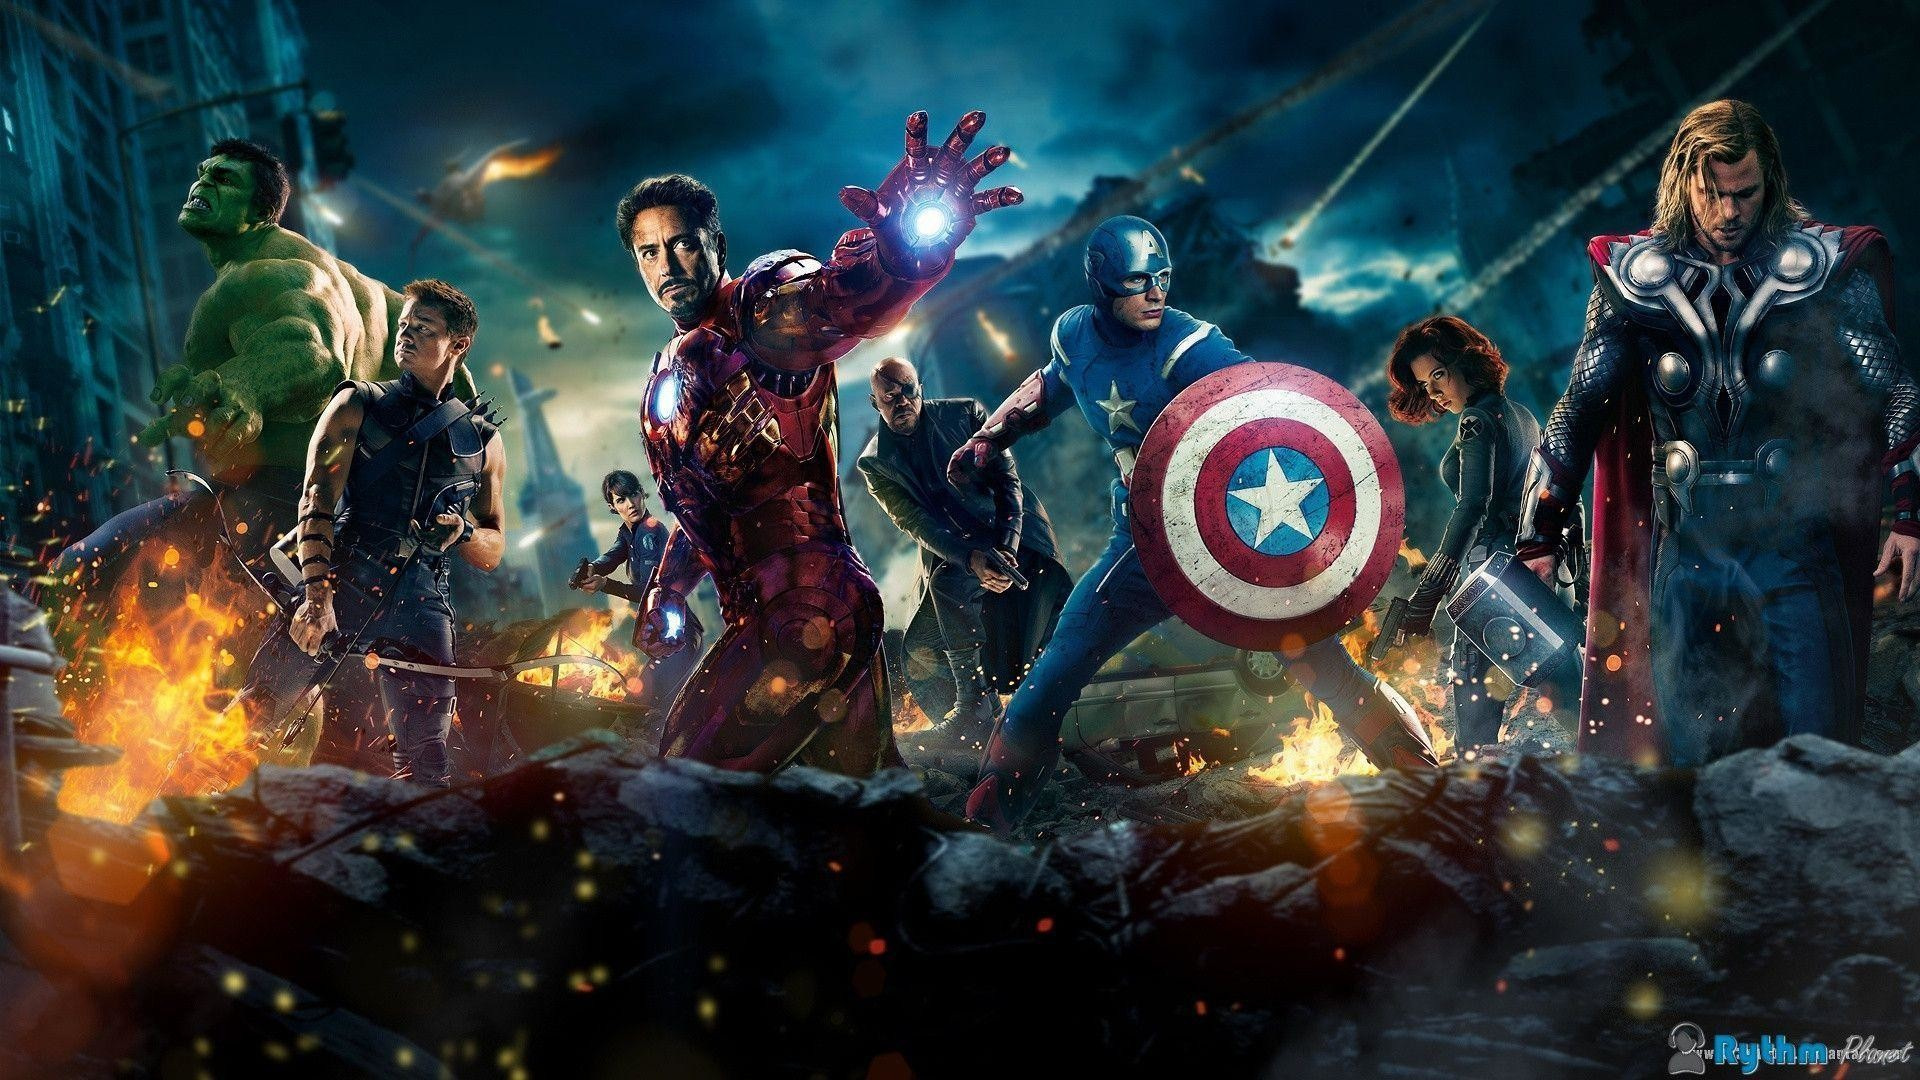 1920x1080 Superhero Wallpaper Biz PX ~ Wallpaper Super Hero #13763